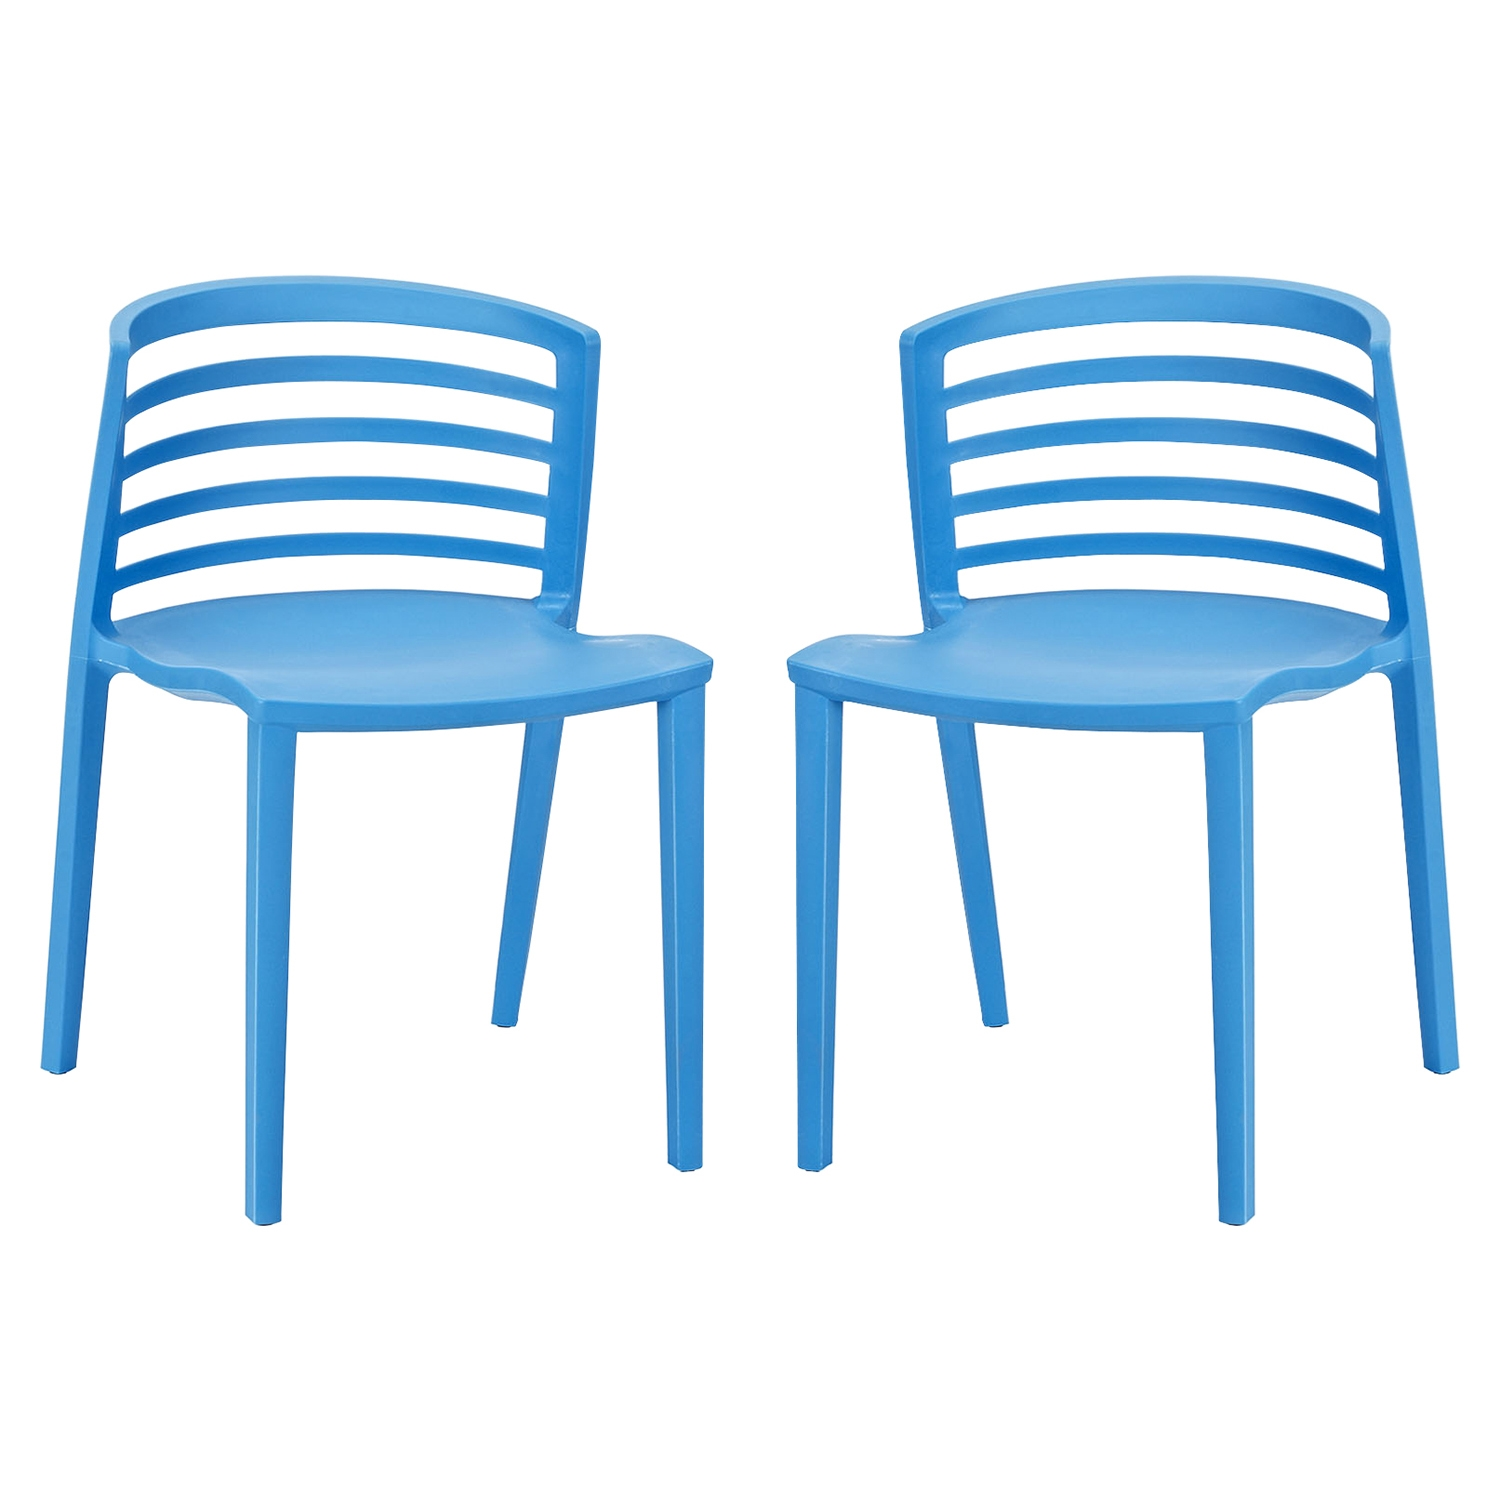 Curvy Dining Chairs (Set of 2)